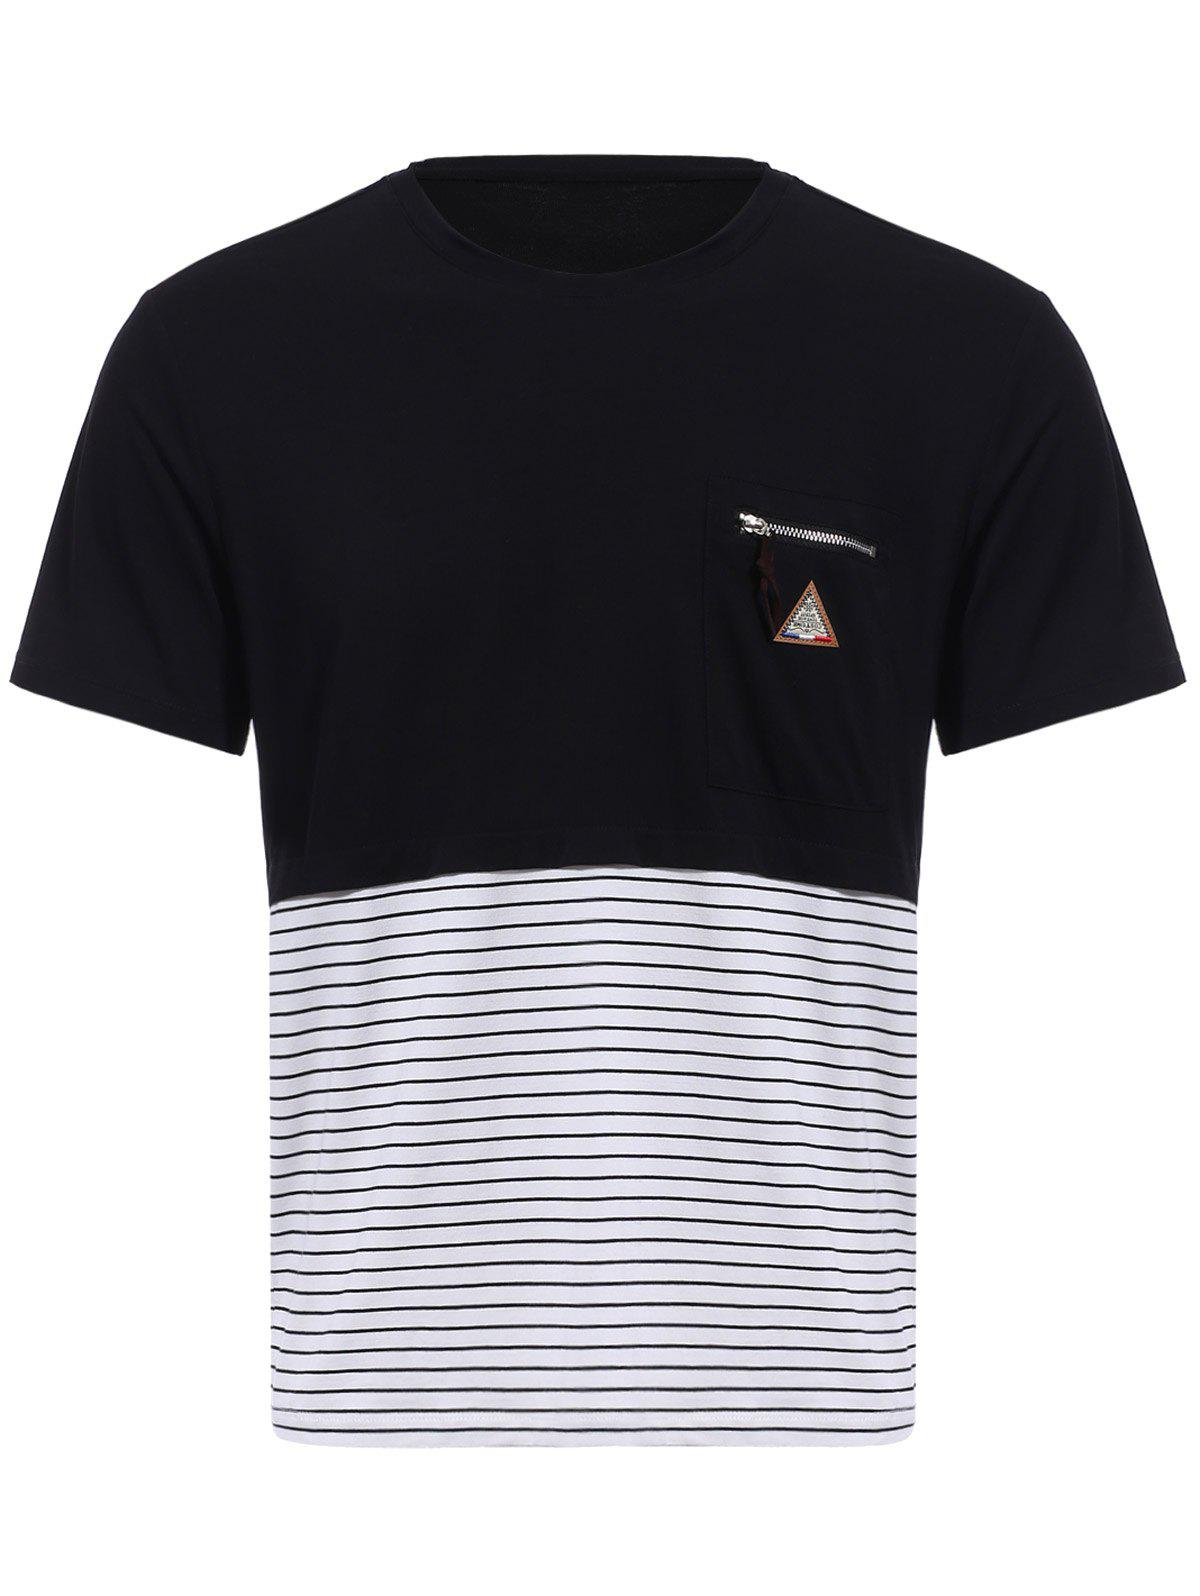 Vogue col rond Zipper Color Block Stripes Spliced ​​Men  's manches courtes T-shirt - Noir 3XL